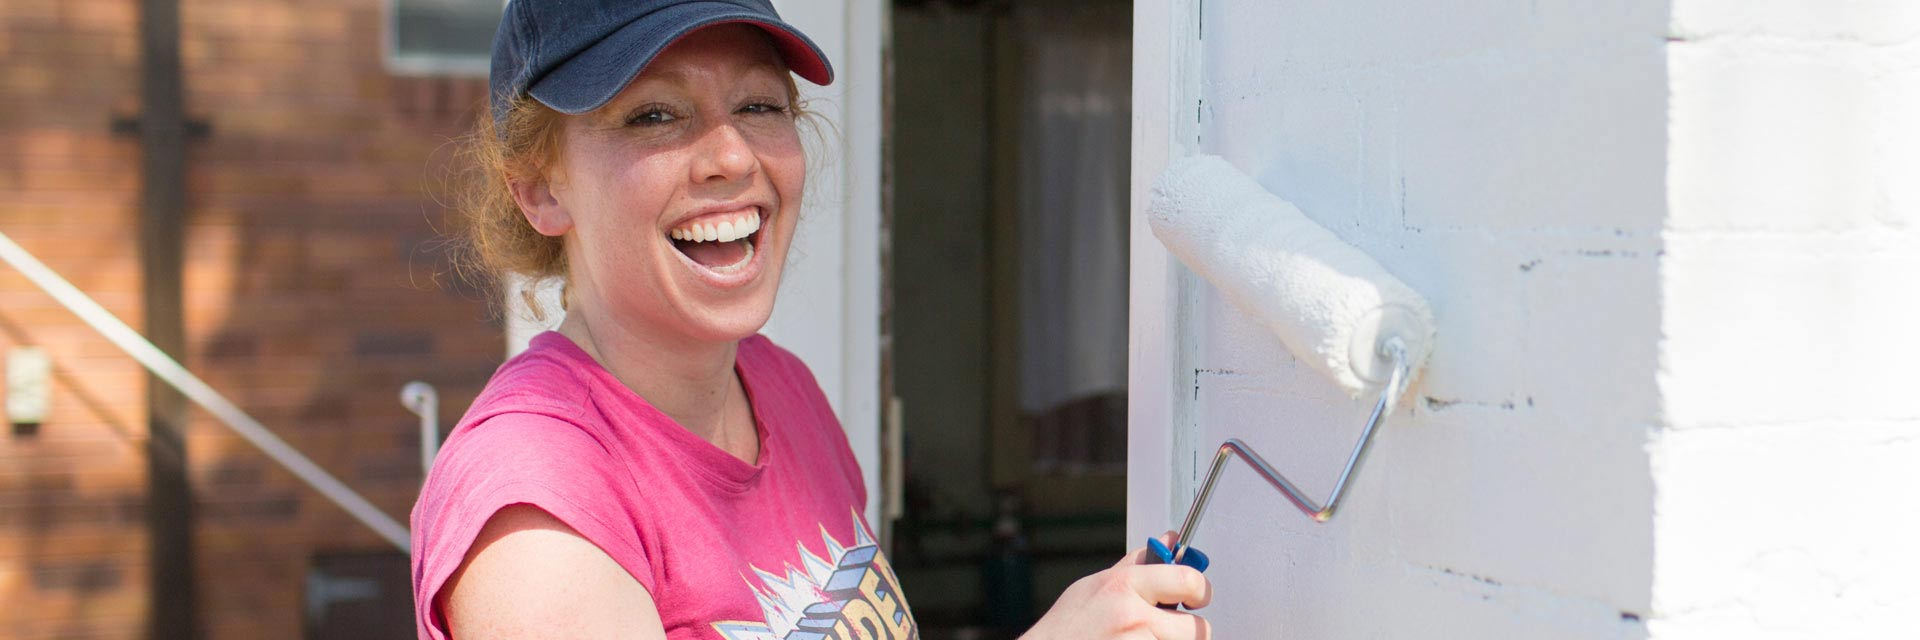 A corporate volunteer painting a wall with a roller